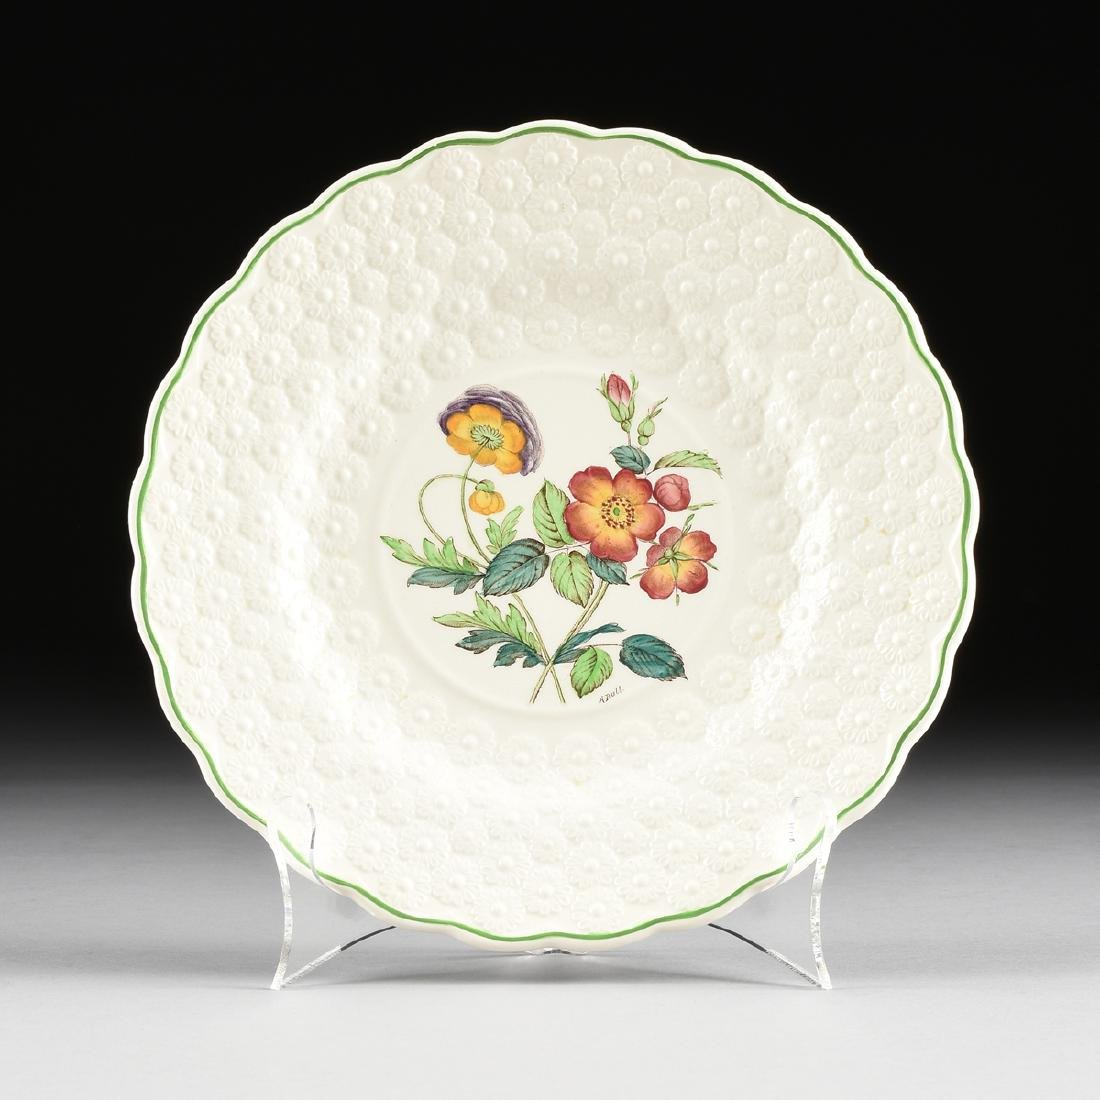 A SET OF SEVEN COPELAND SPODE TRANSFER PRINTED LUNCHEON